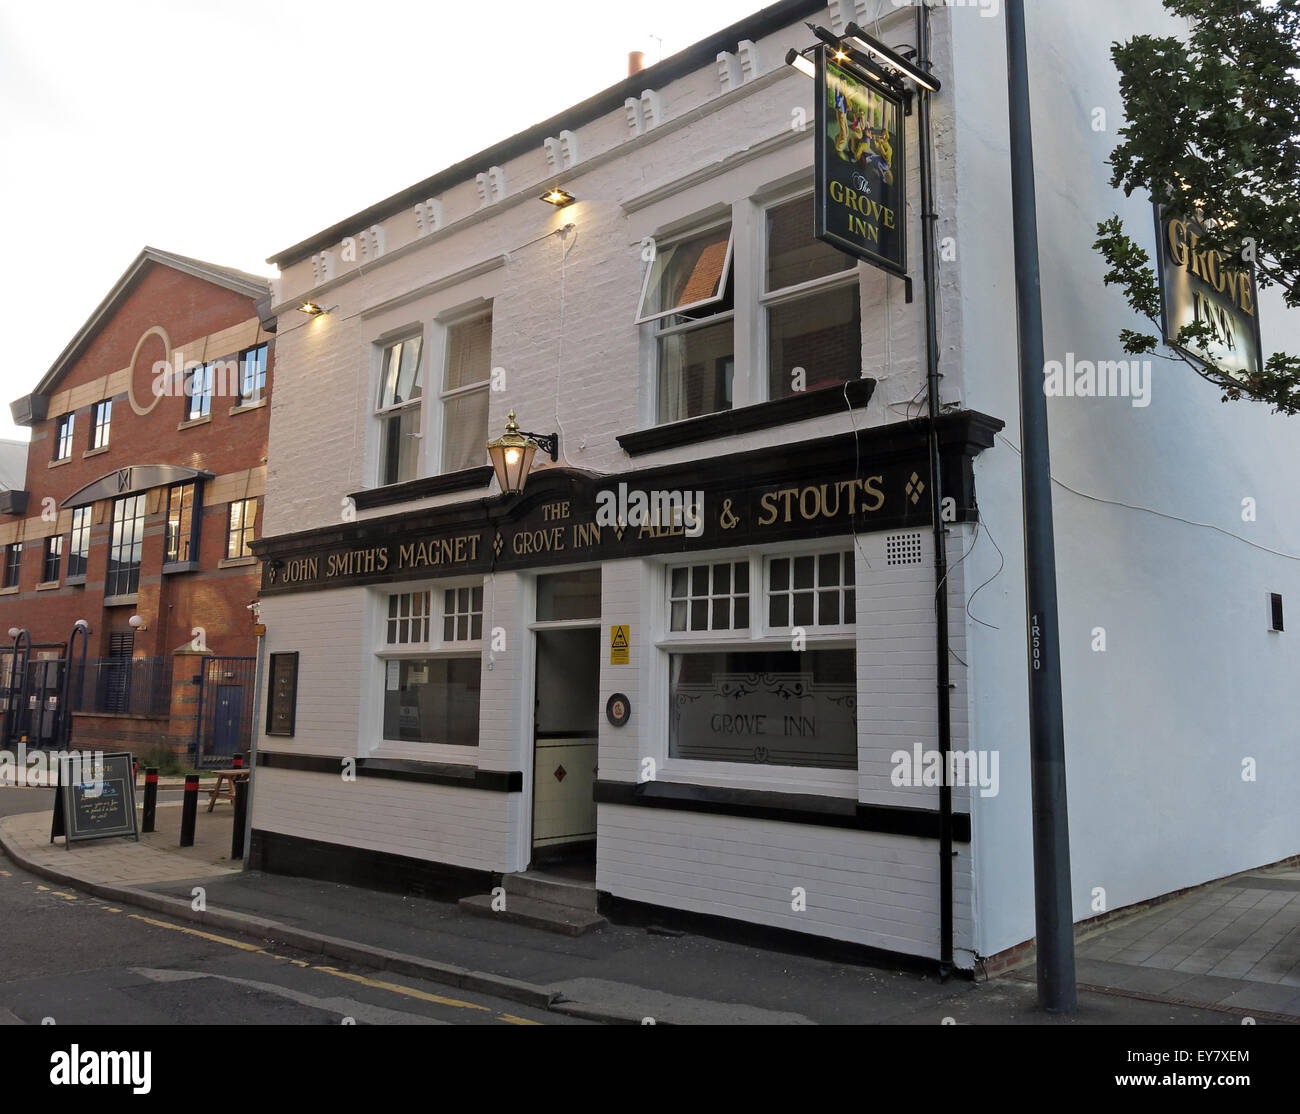 real,ale,CAMRA,bar,drink,drinkers,traditional,history,historic,Grove,Inn,Pub,Back,Row,West,Yorkshire,England,UK,English,GB,Great,Britain,British,city,centre,granary,John,Smiths,Magnet,Ales,LS115PL,LS11 5PL,Real Ale,Old Pub,John Smiths,Magnet Ales,LS11 5PL,GoTonySmith,Buy Pictures of,Buy Images Of